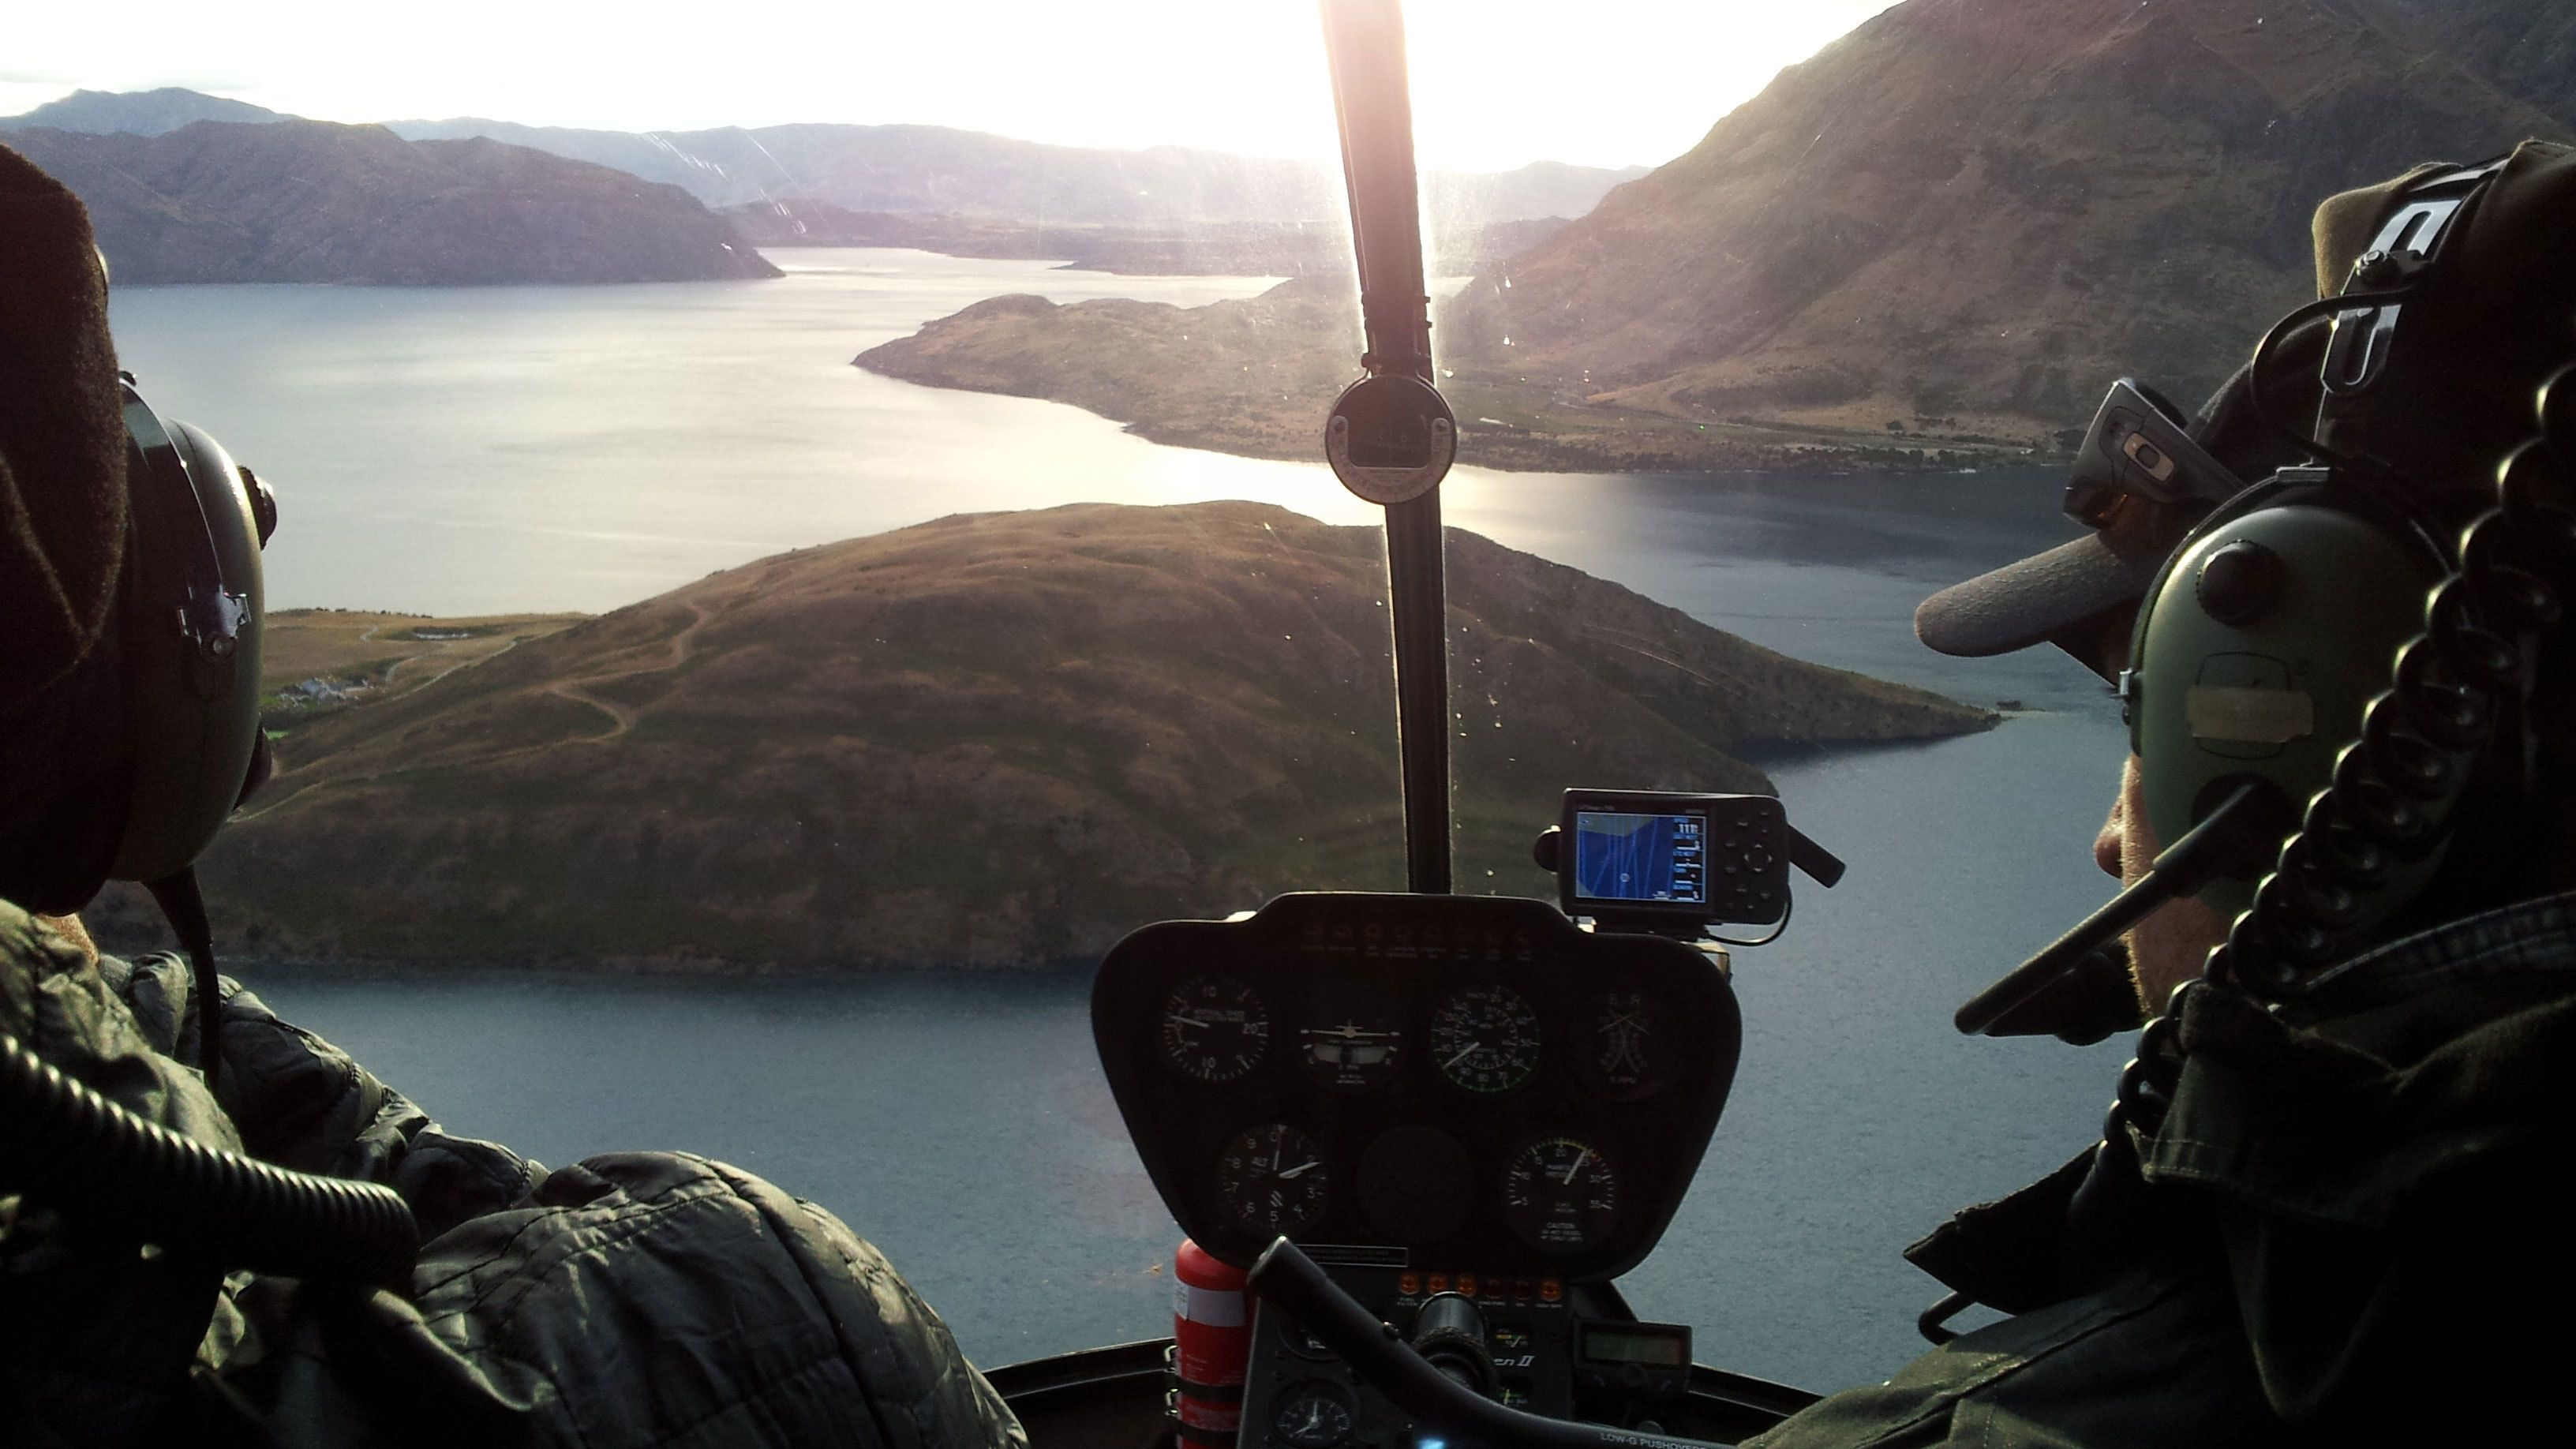 View of fjords from a Helicopter cockpit